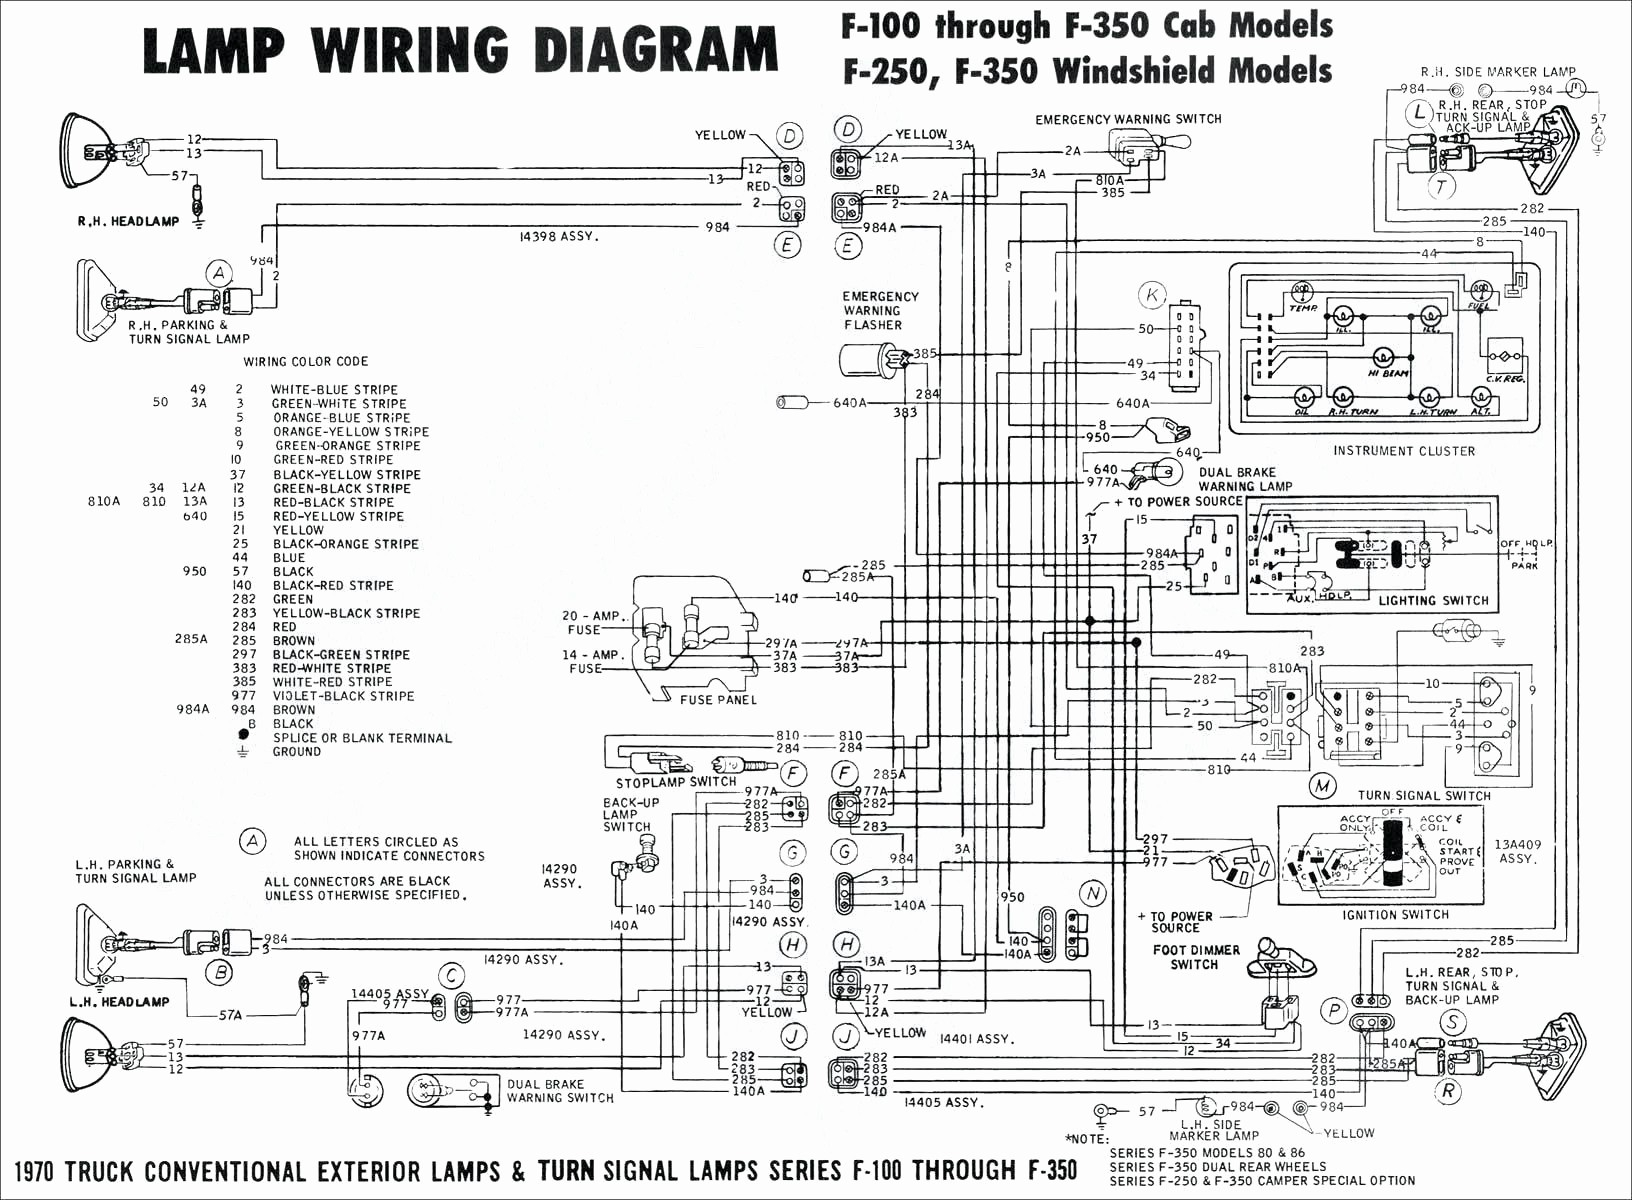 chrysler pacifica bcm wiring diagram 2004 chrysler pacifica wiring schematic | free wiring diagram chrysler pacifica trailer wiring